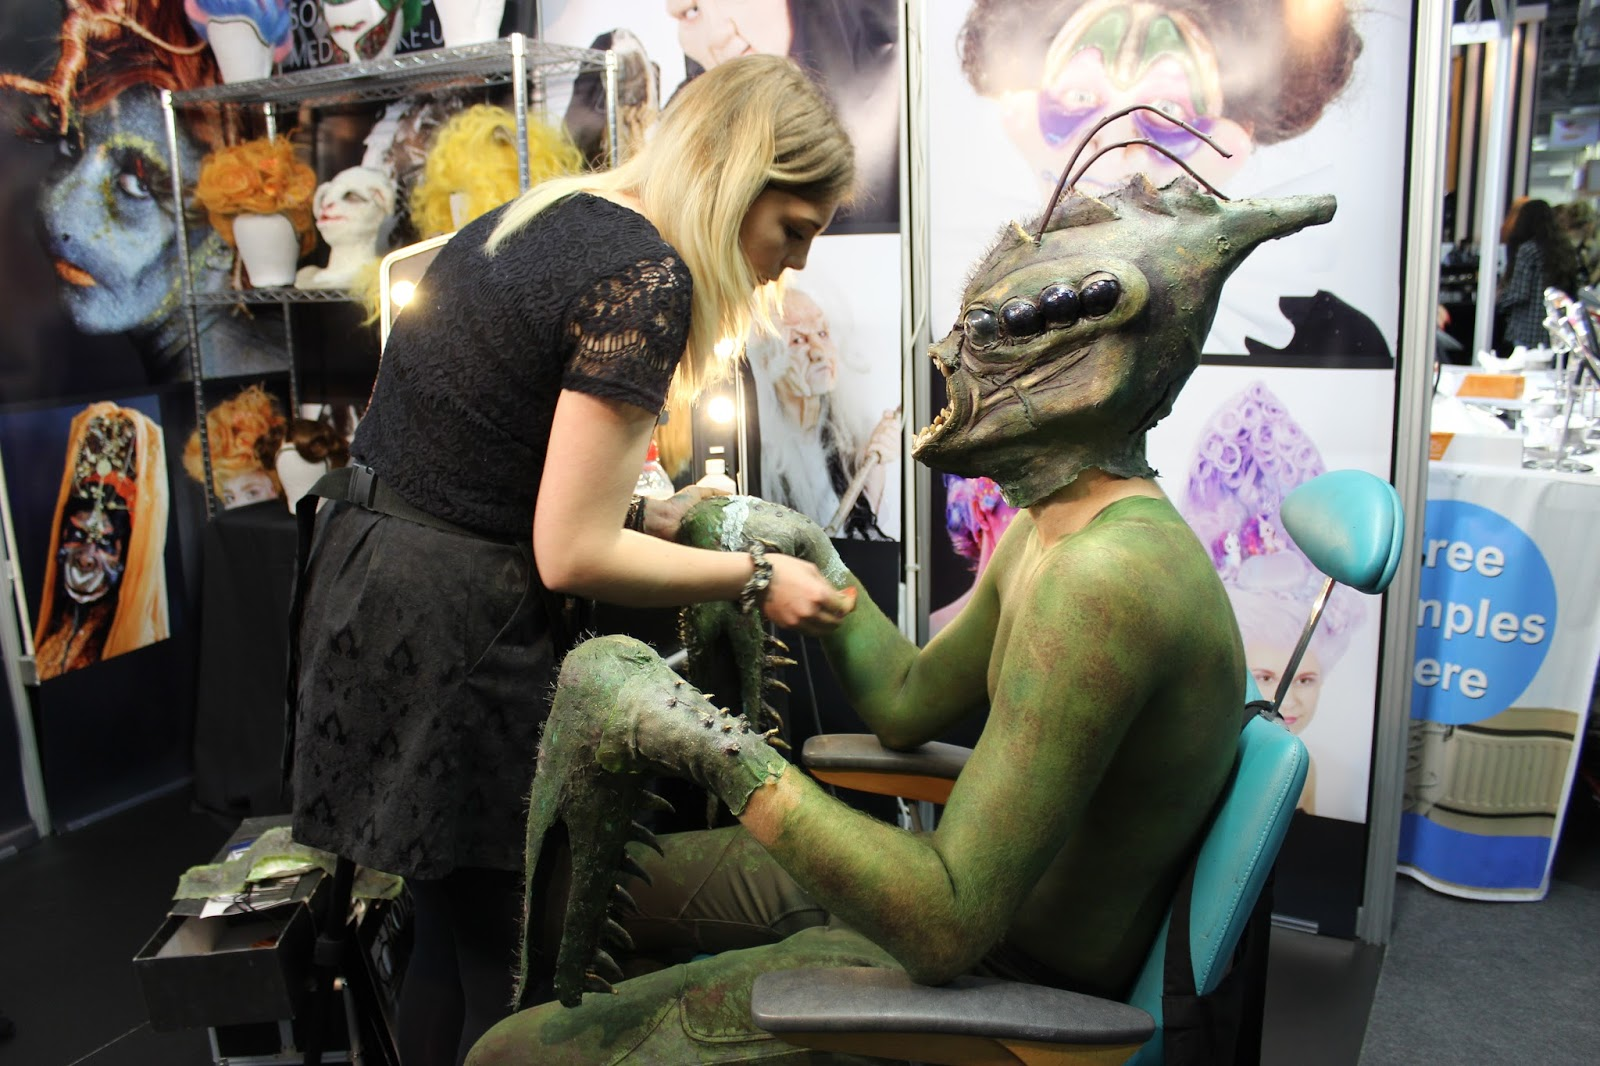 IMATS london 2014 body painting giant cricket man